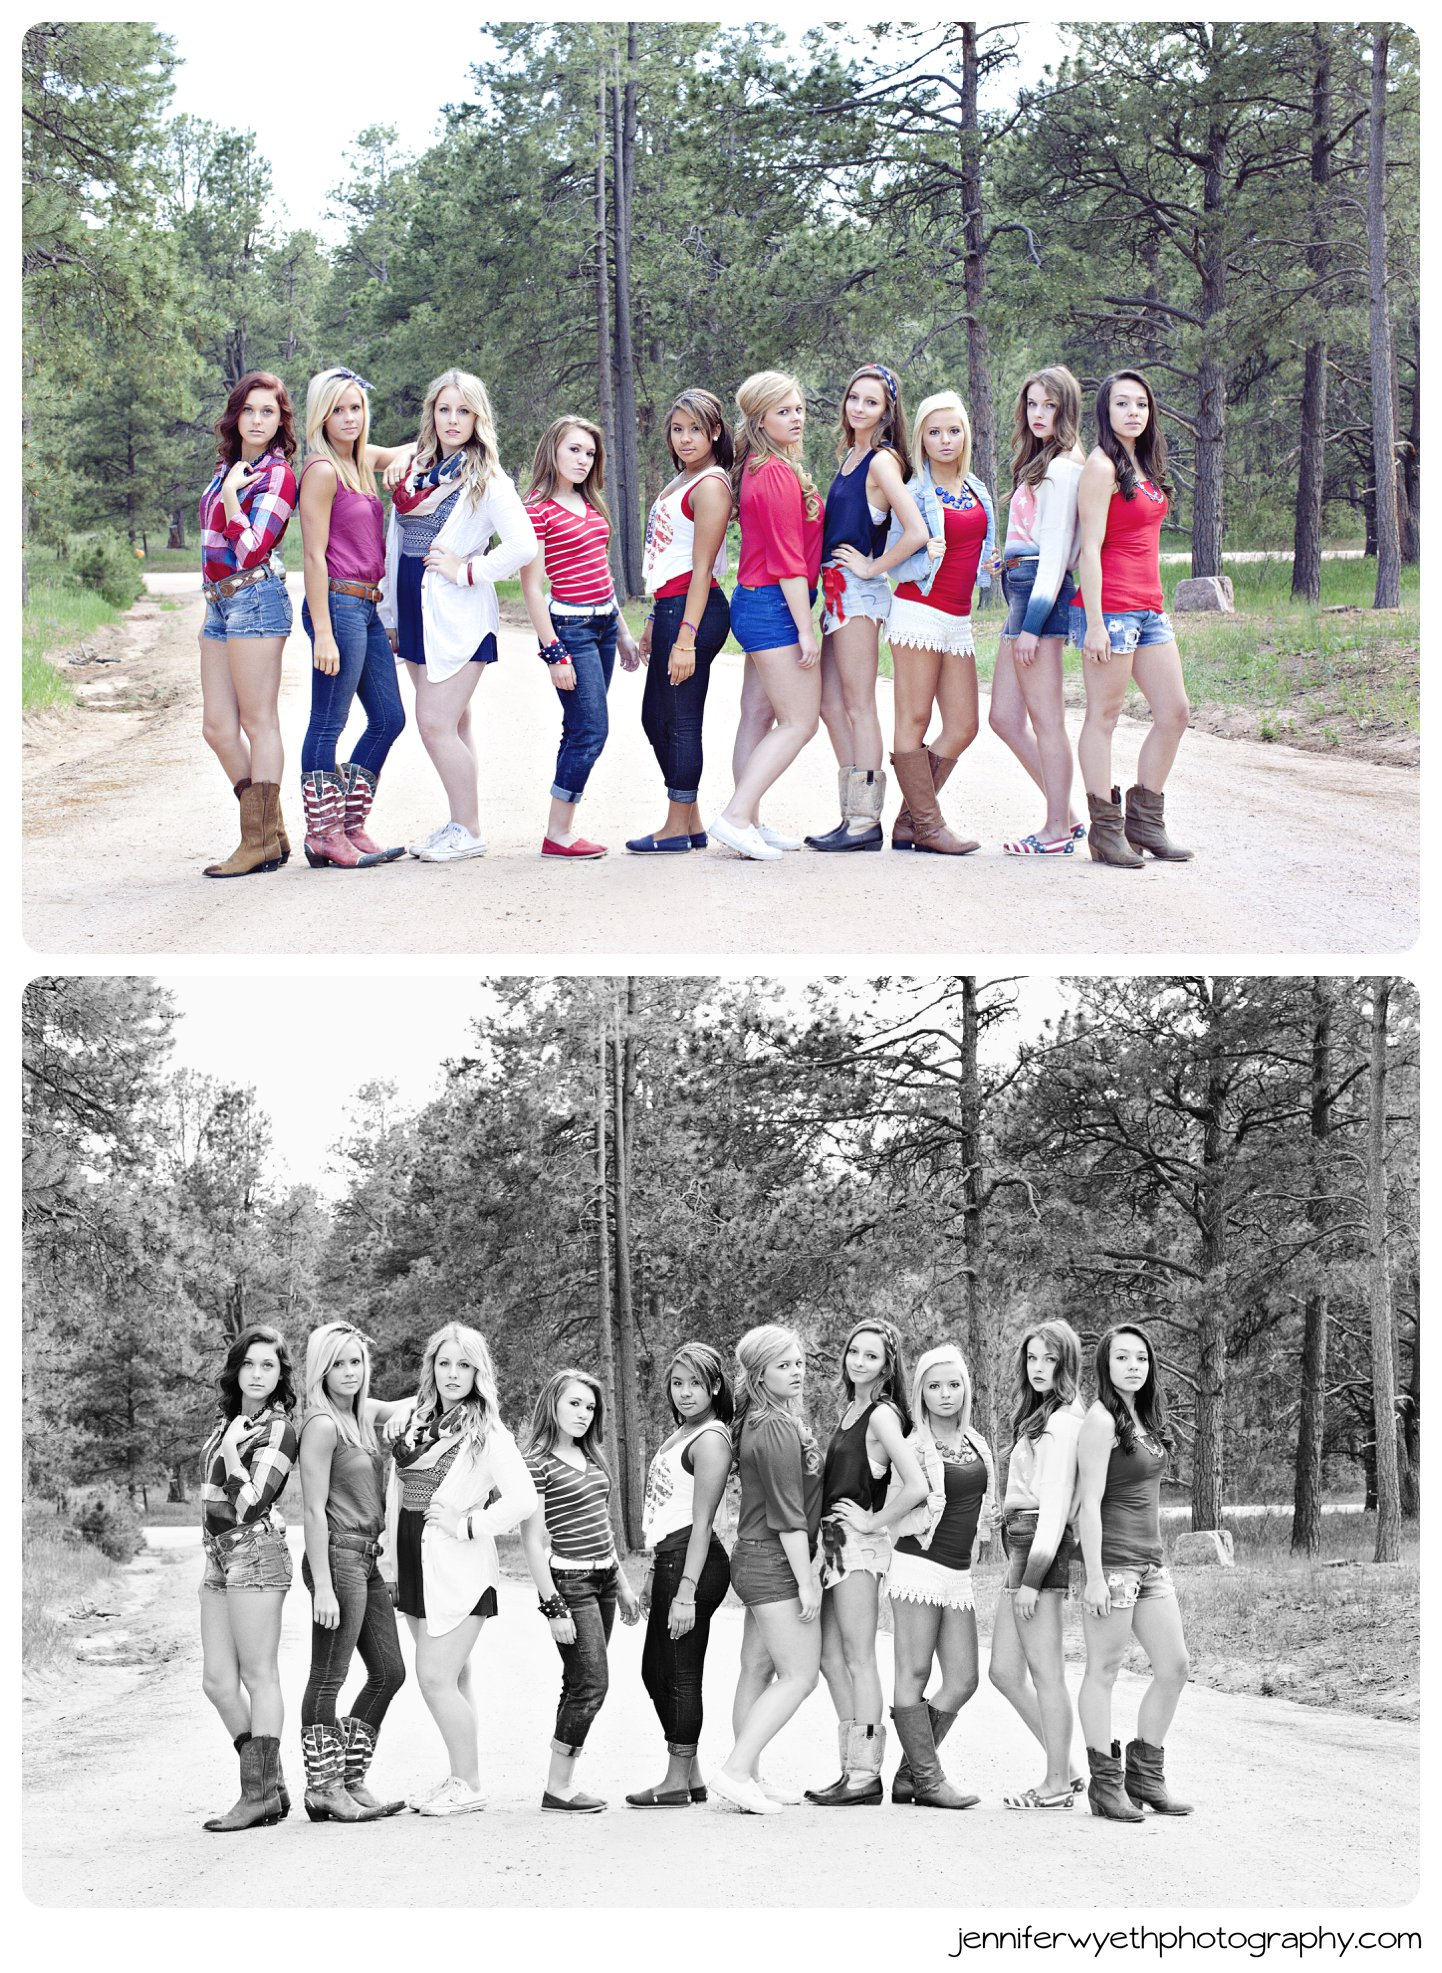 cheerleaders pose on dirt road with friends in forest